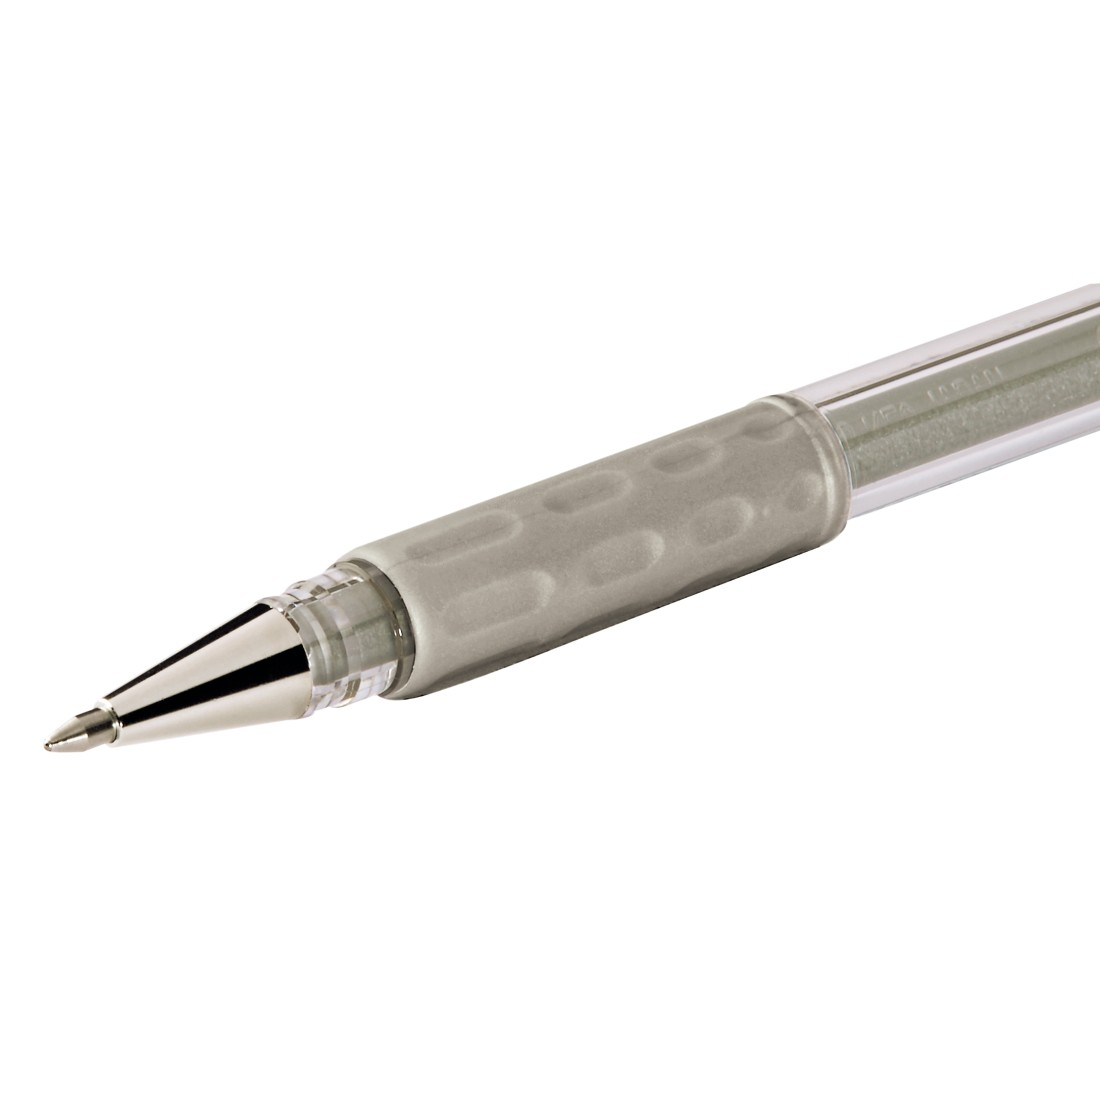 dex High-Res Detail - Hama, Hybrid Gel Grip Creative Pen, silver